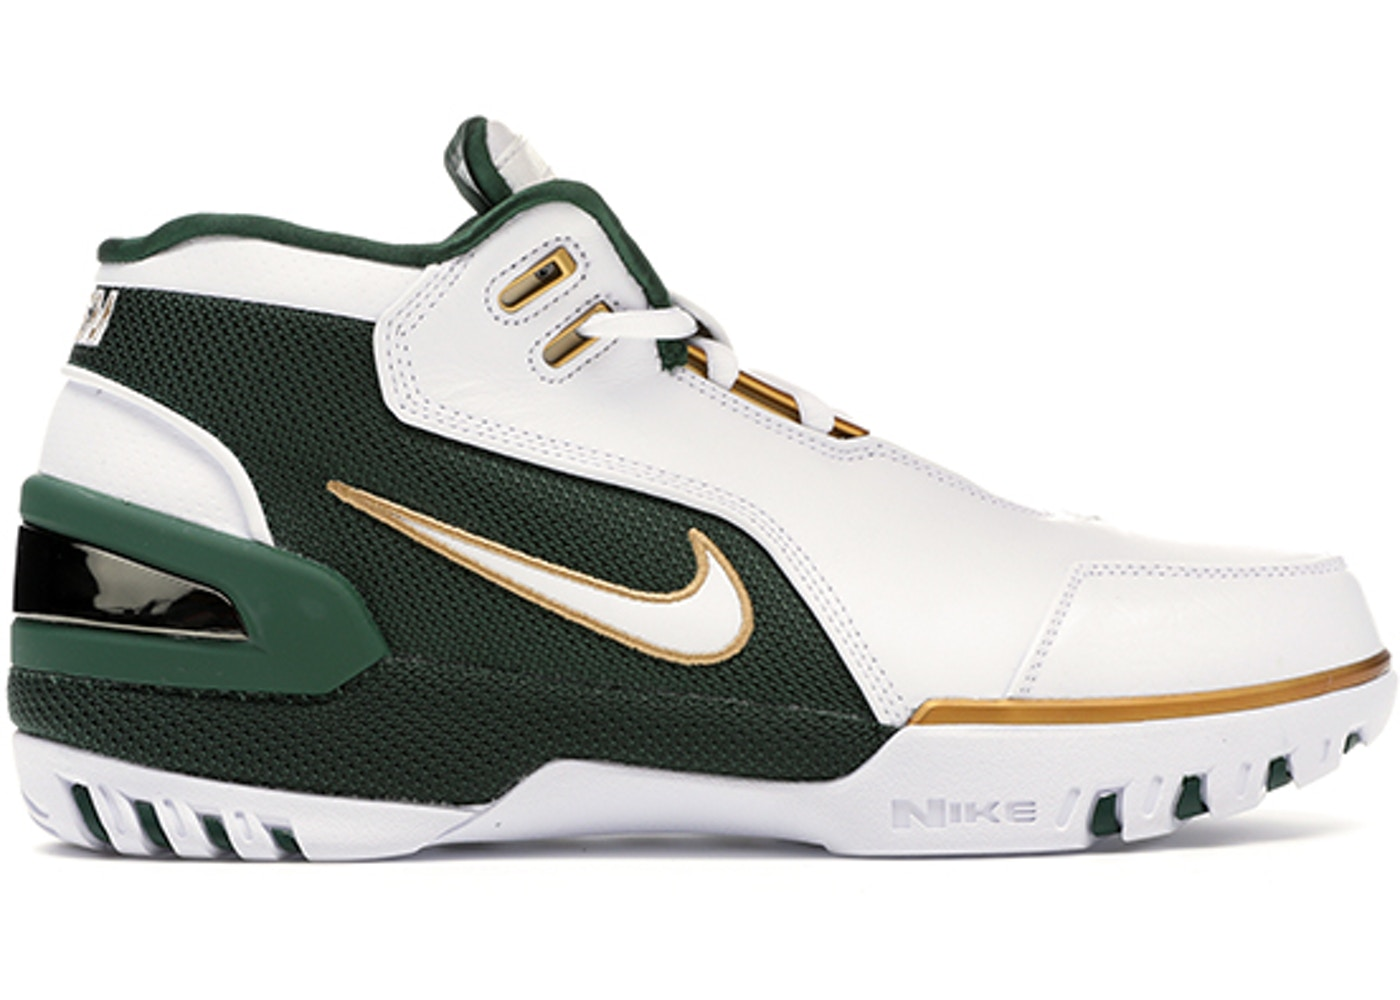 new style 5ad48 0f2e0 Air Zoom Generation SVSM Retro - AO2367-100